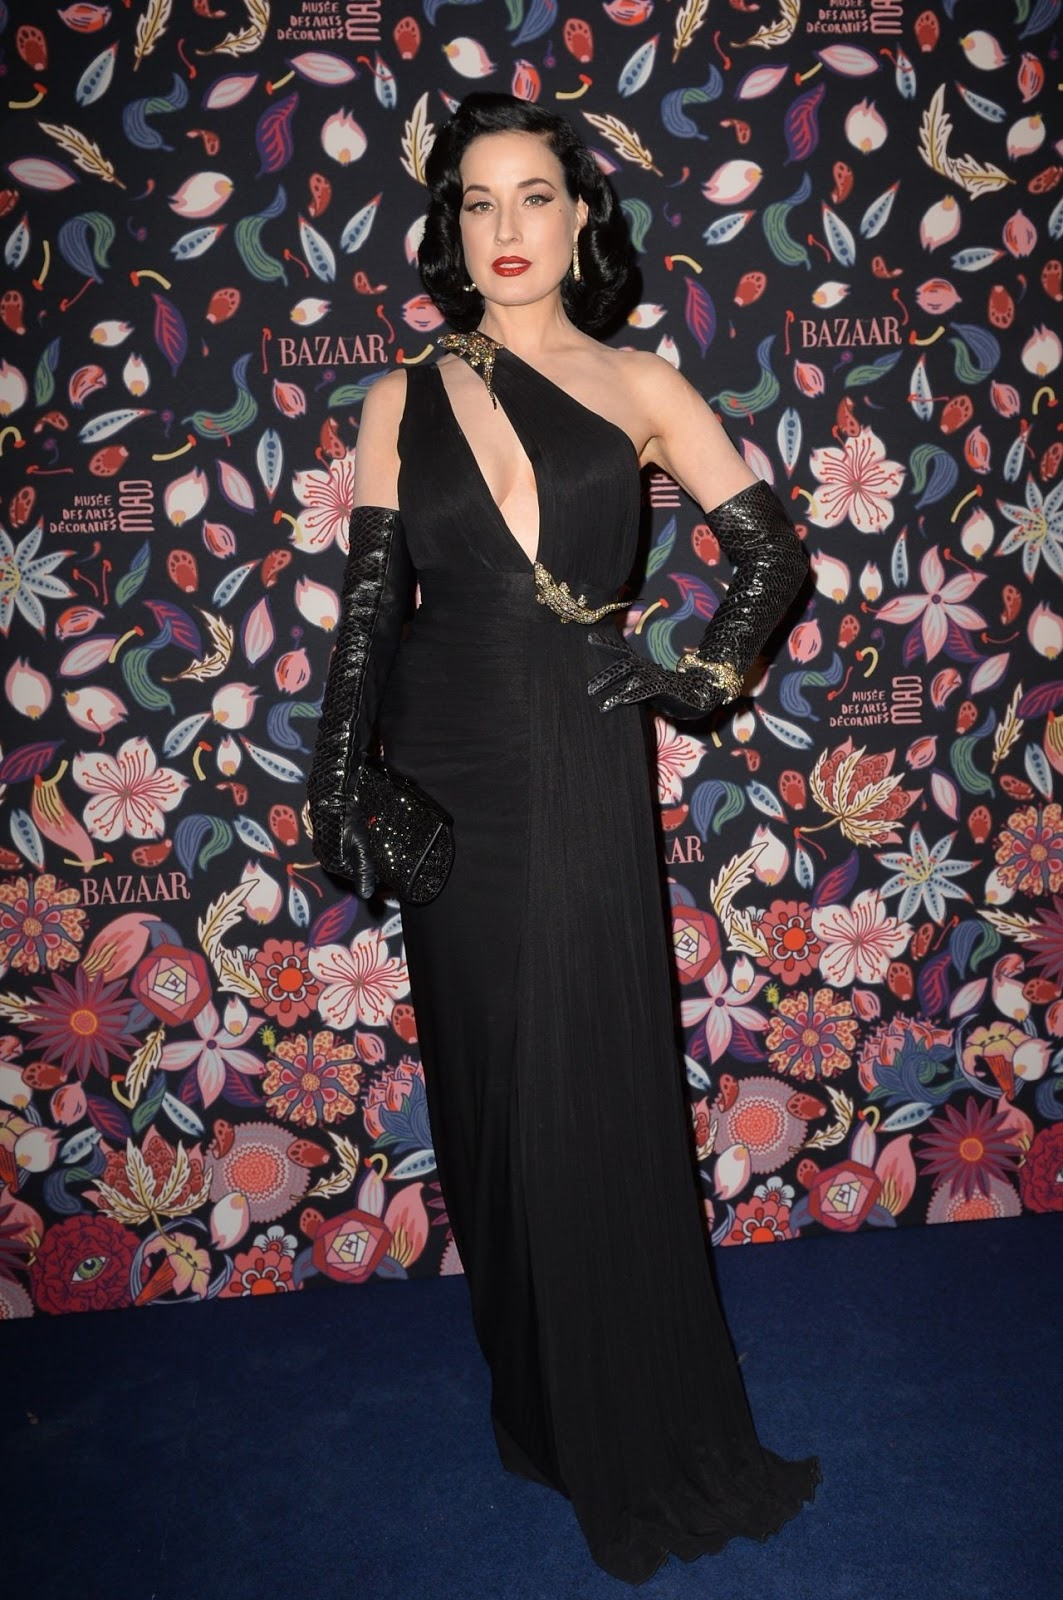 Dita Von Teese brings gothic glam to the Harper's Bazaar Paris Fashion Week Gala